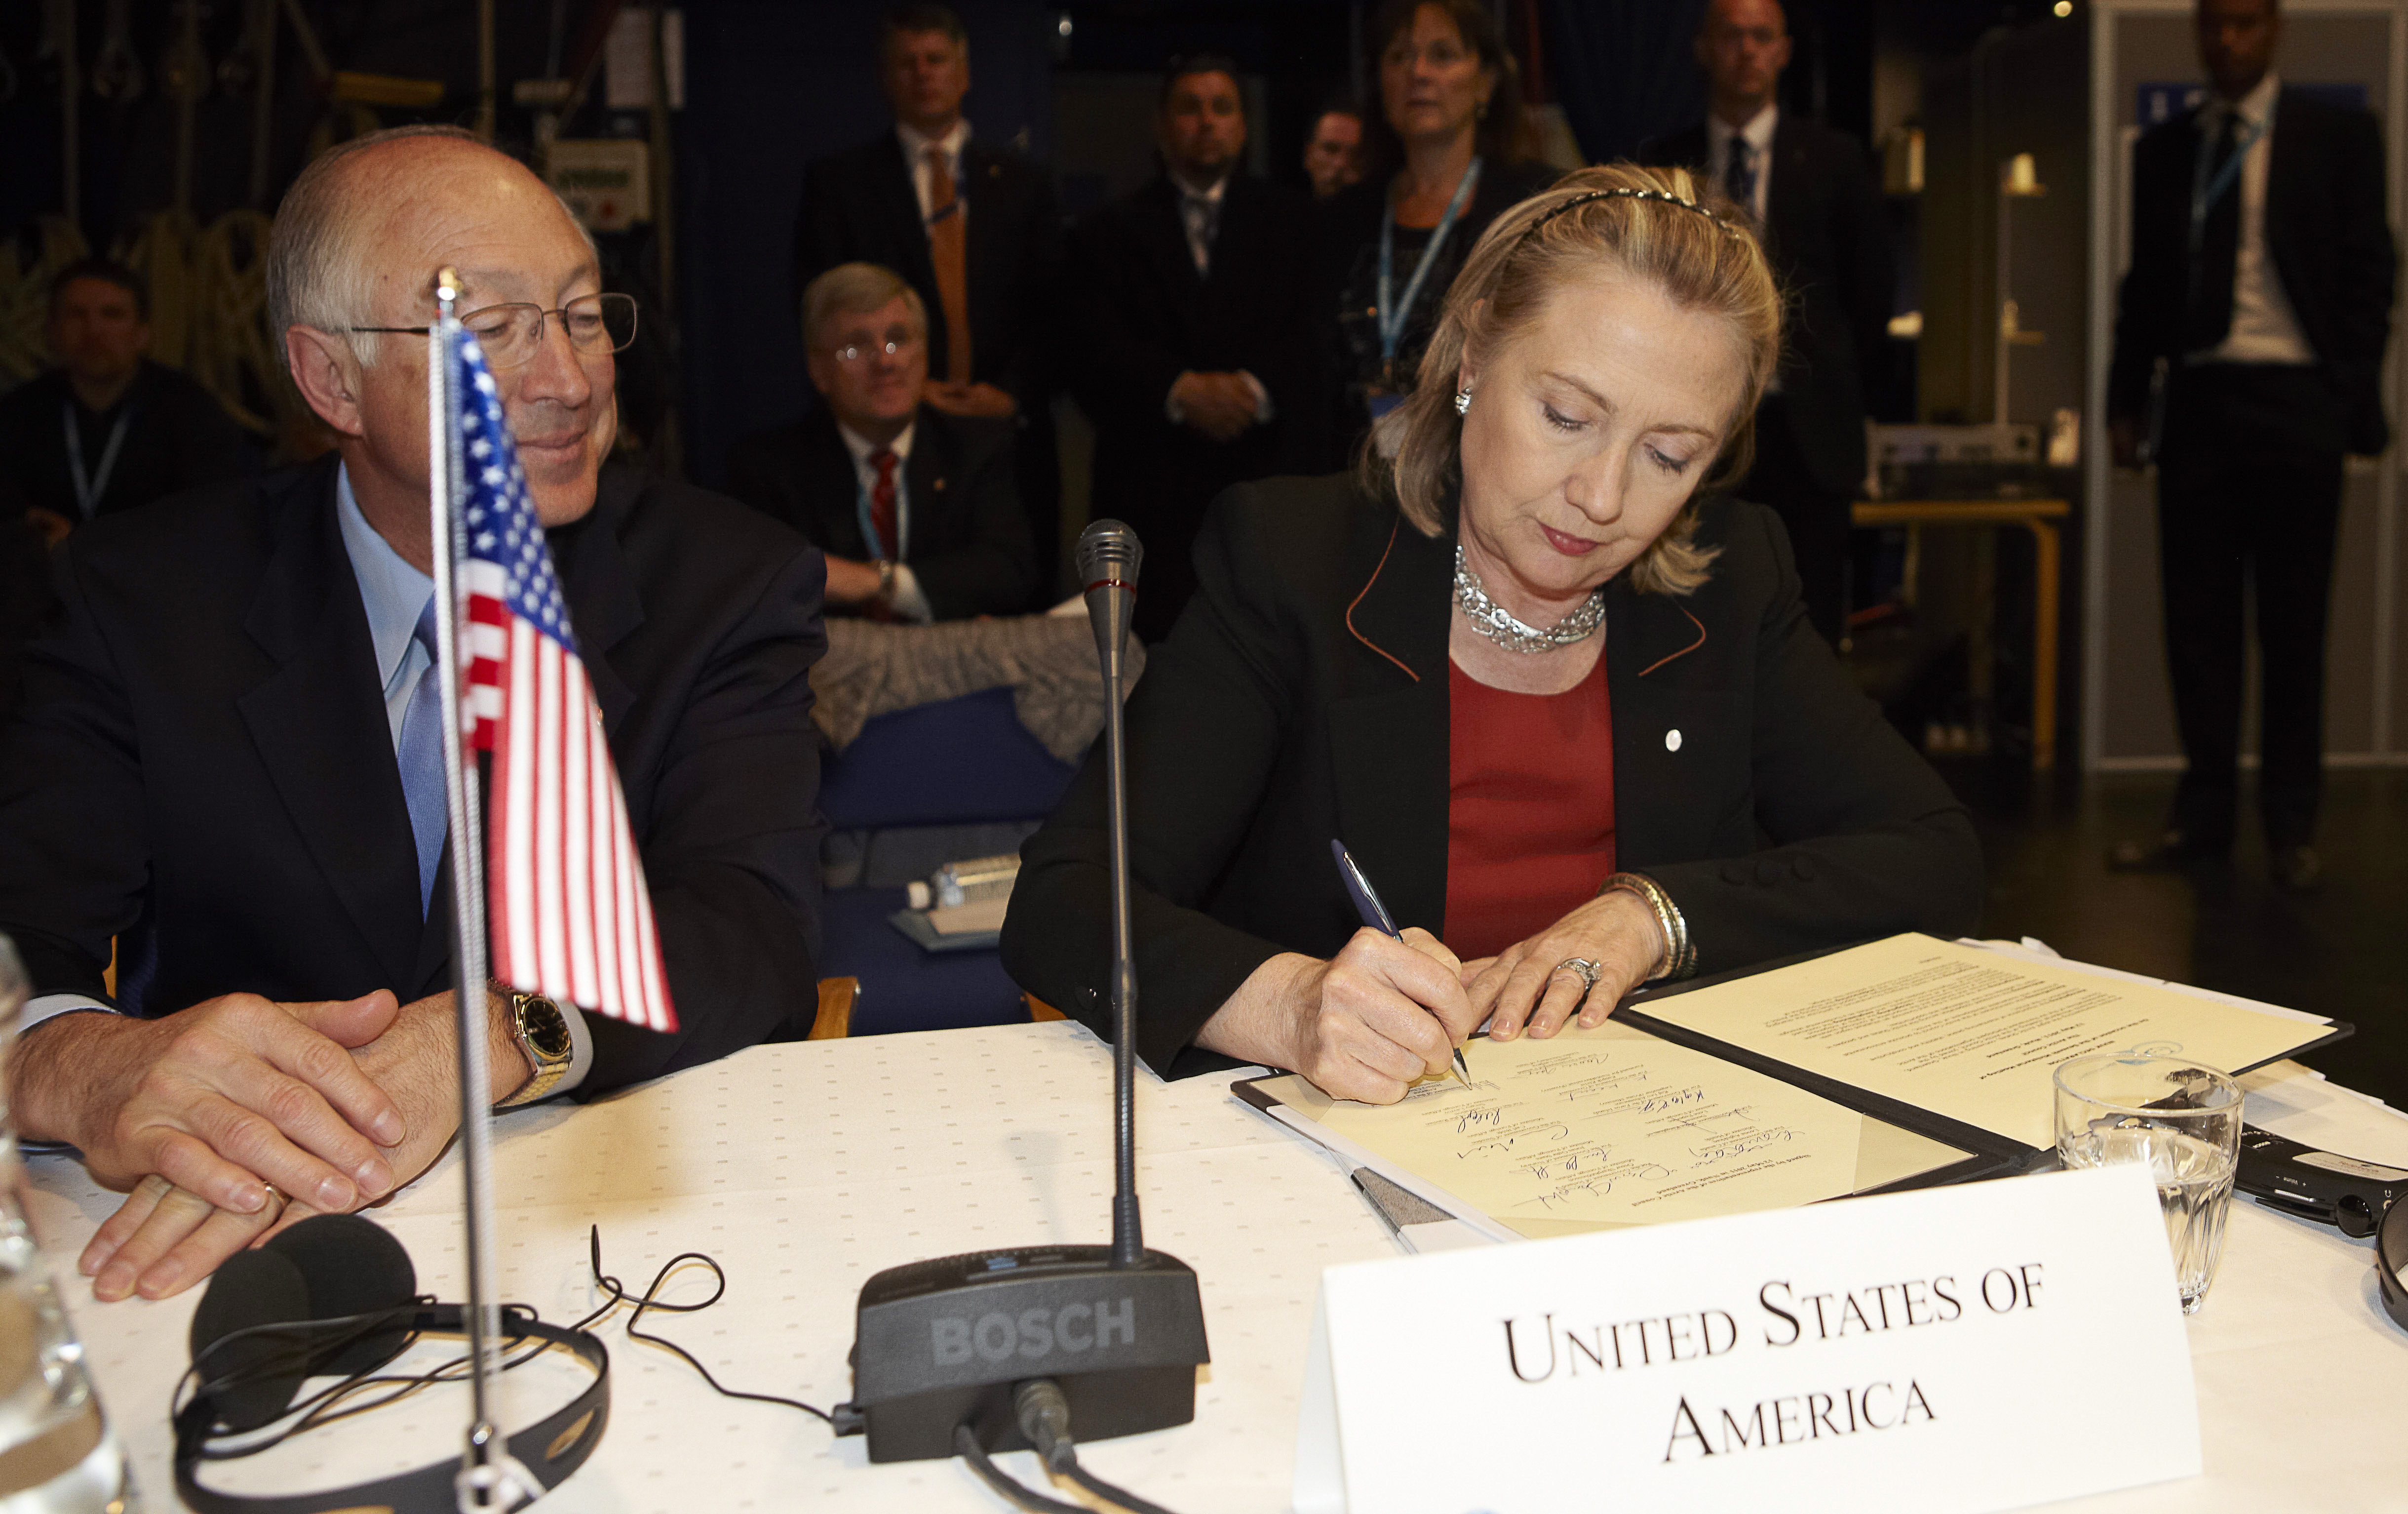 Interior Secretary Ken Salazar looks as Hillary Clinton signs Nuuk Agreement and the Agreement on a common SAR emergency at the meeting of the Arctic Council on May 12, 2011 in Nuuk. (credit: Ulrik Bang/AFP/Getty Images)